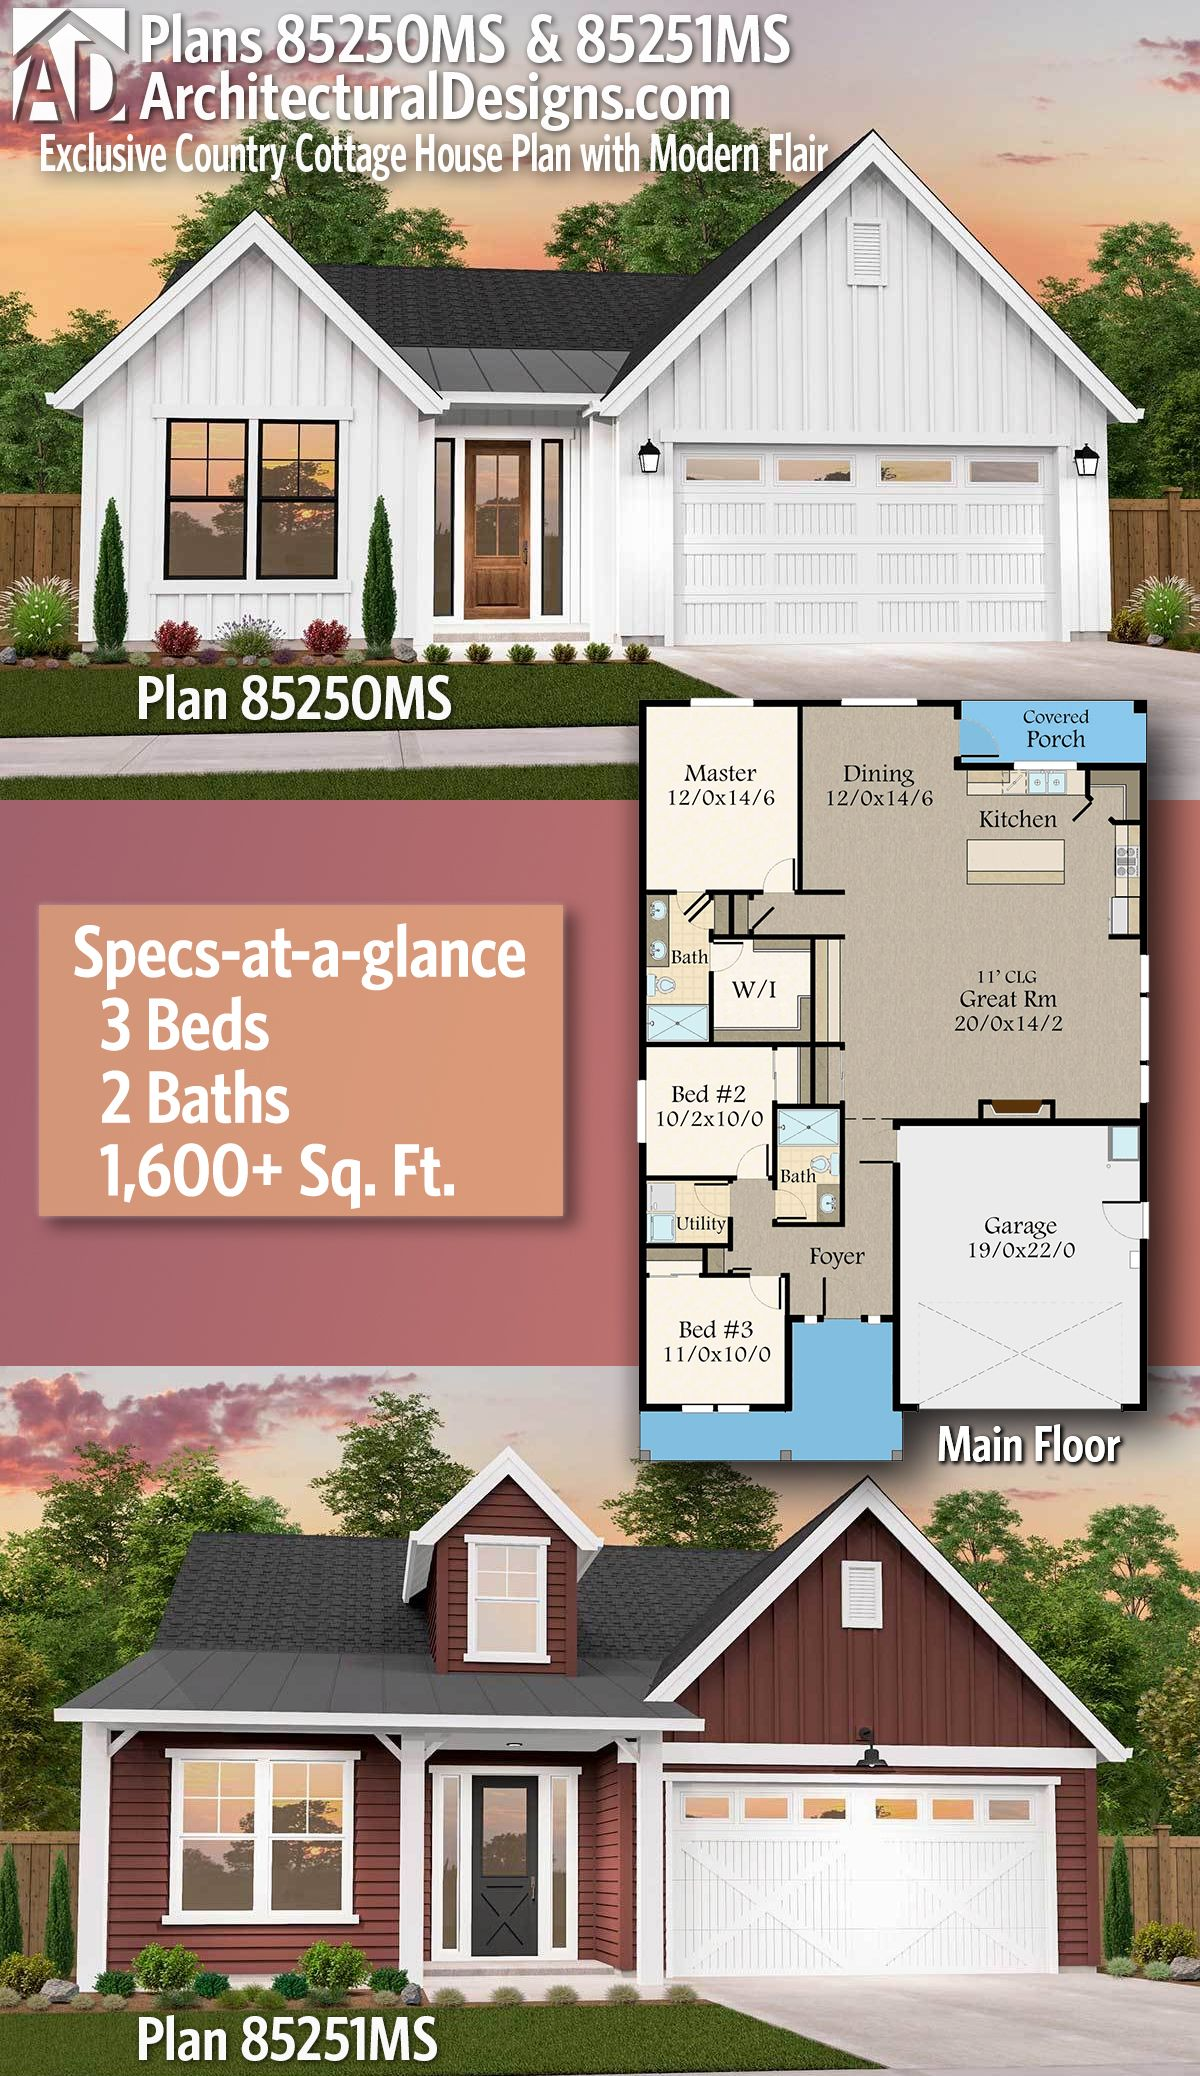 Architectural Designs Exclusive Affordable Farmhouse Plan 85250ms 85251ms 3 Beds 2 Bath House Plans Farmhouse Farmhouse Plans Farmhouse Style House Plans